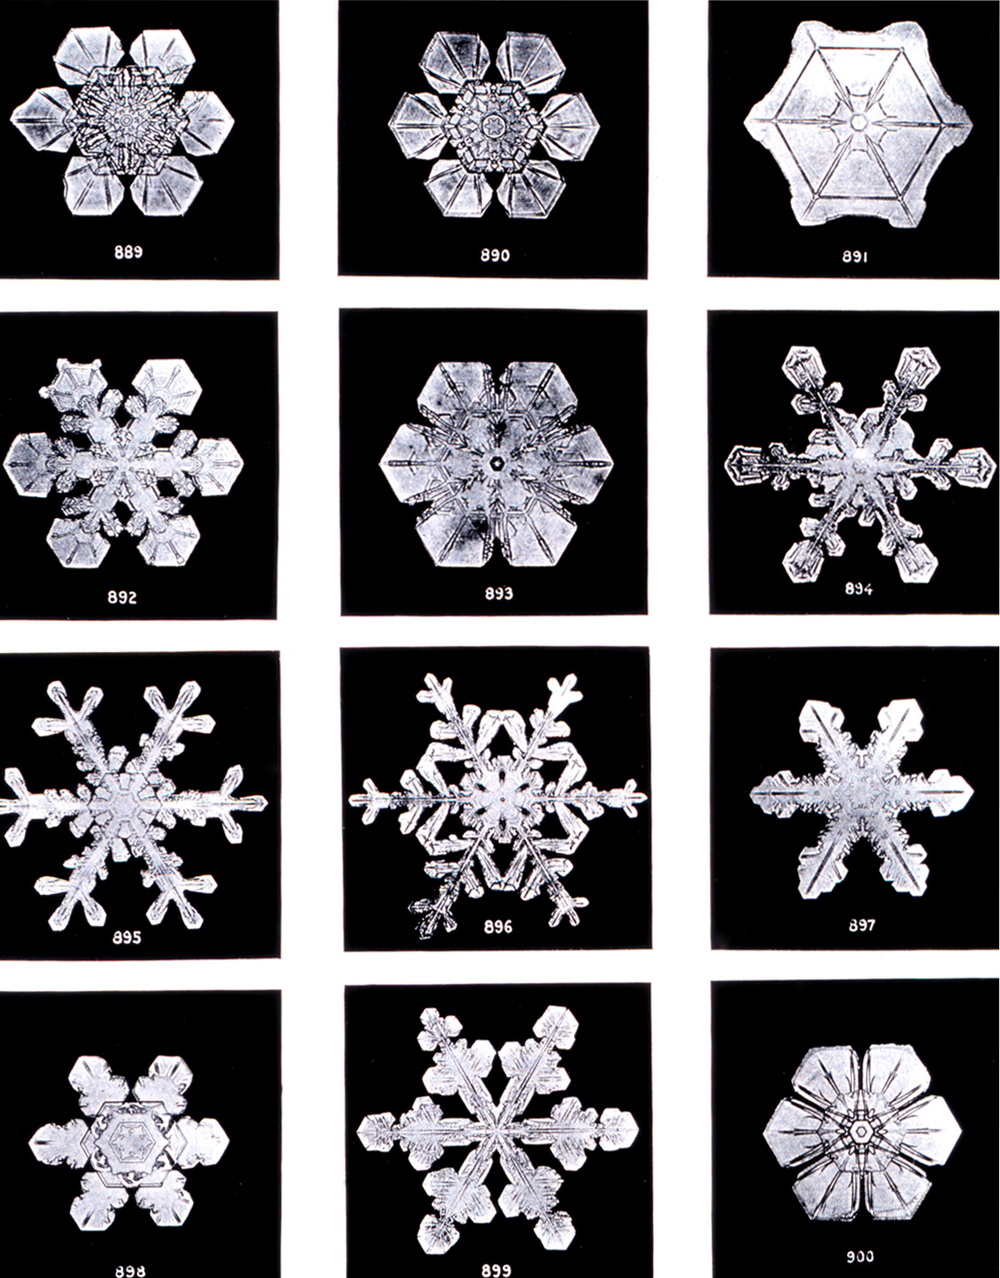 """Under the microscope, I found that snowflakes were miracles of beauty; and it seemed a shame that this beauty should not be seen and appreciated by others. Every crystal was a masterpiece of design and no one design was ever repeated., When a snowflake melted, that design was forever lost. Just that much beauty was gone, without leaving any record behind."" -- Wilson Bentley (1925)"